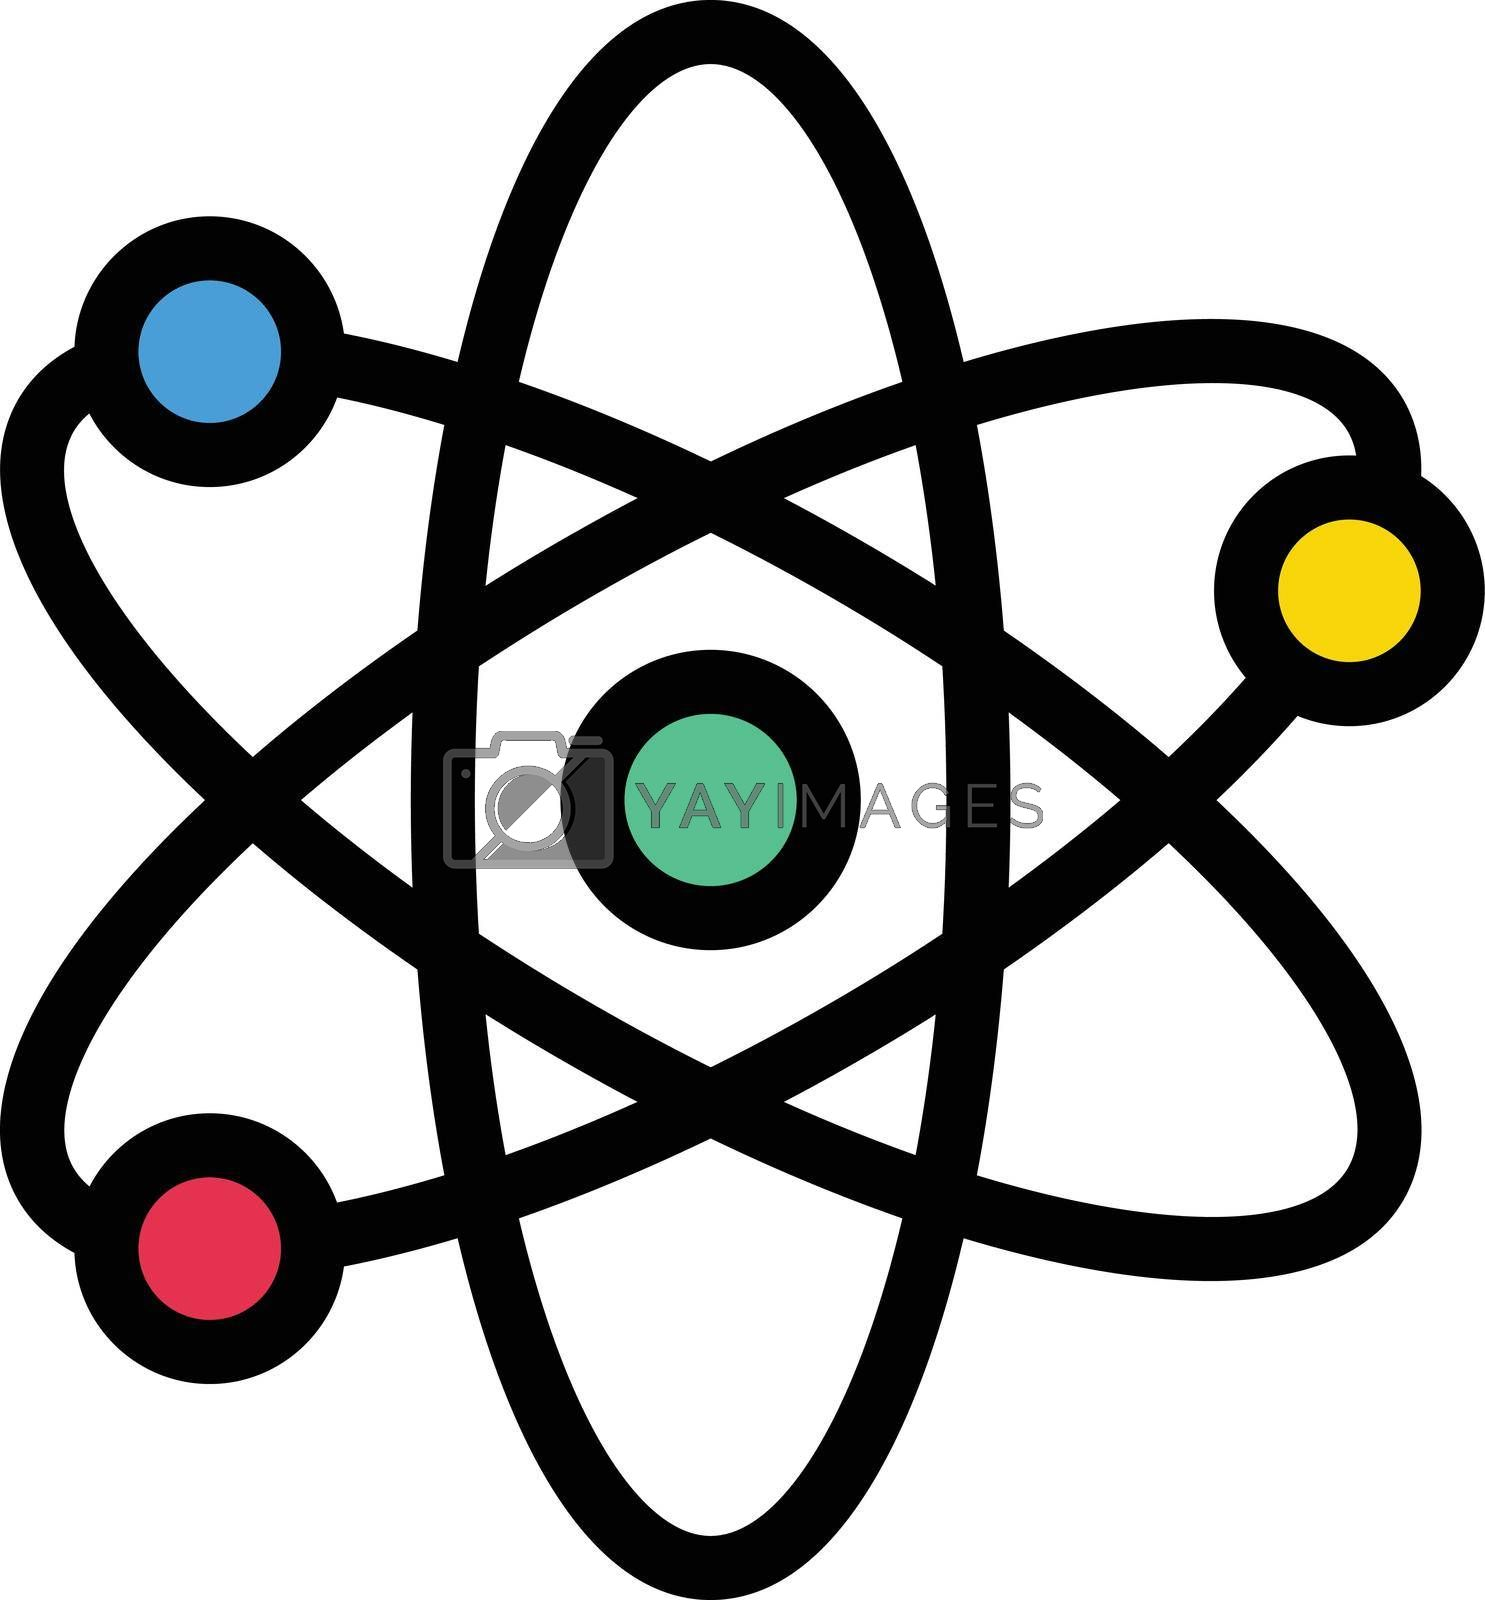 Royalty free image of atom by vectorstall